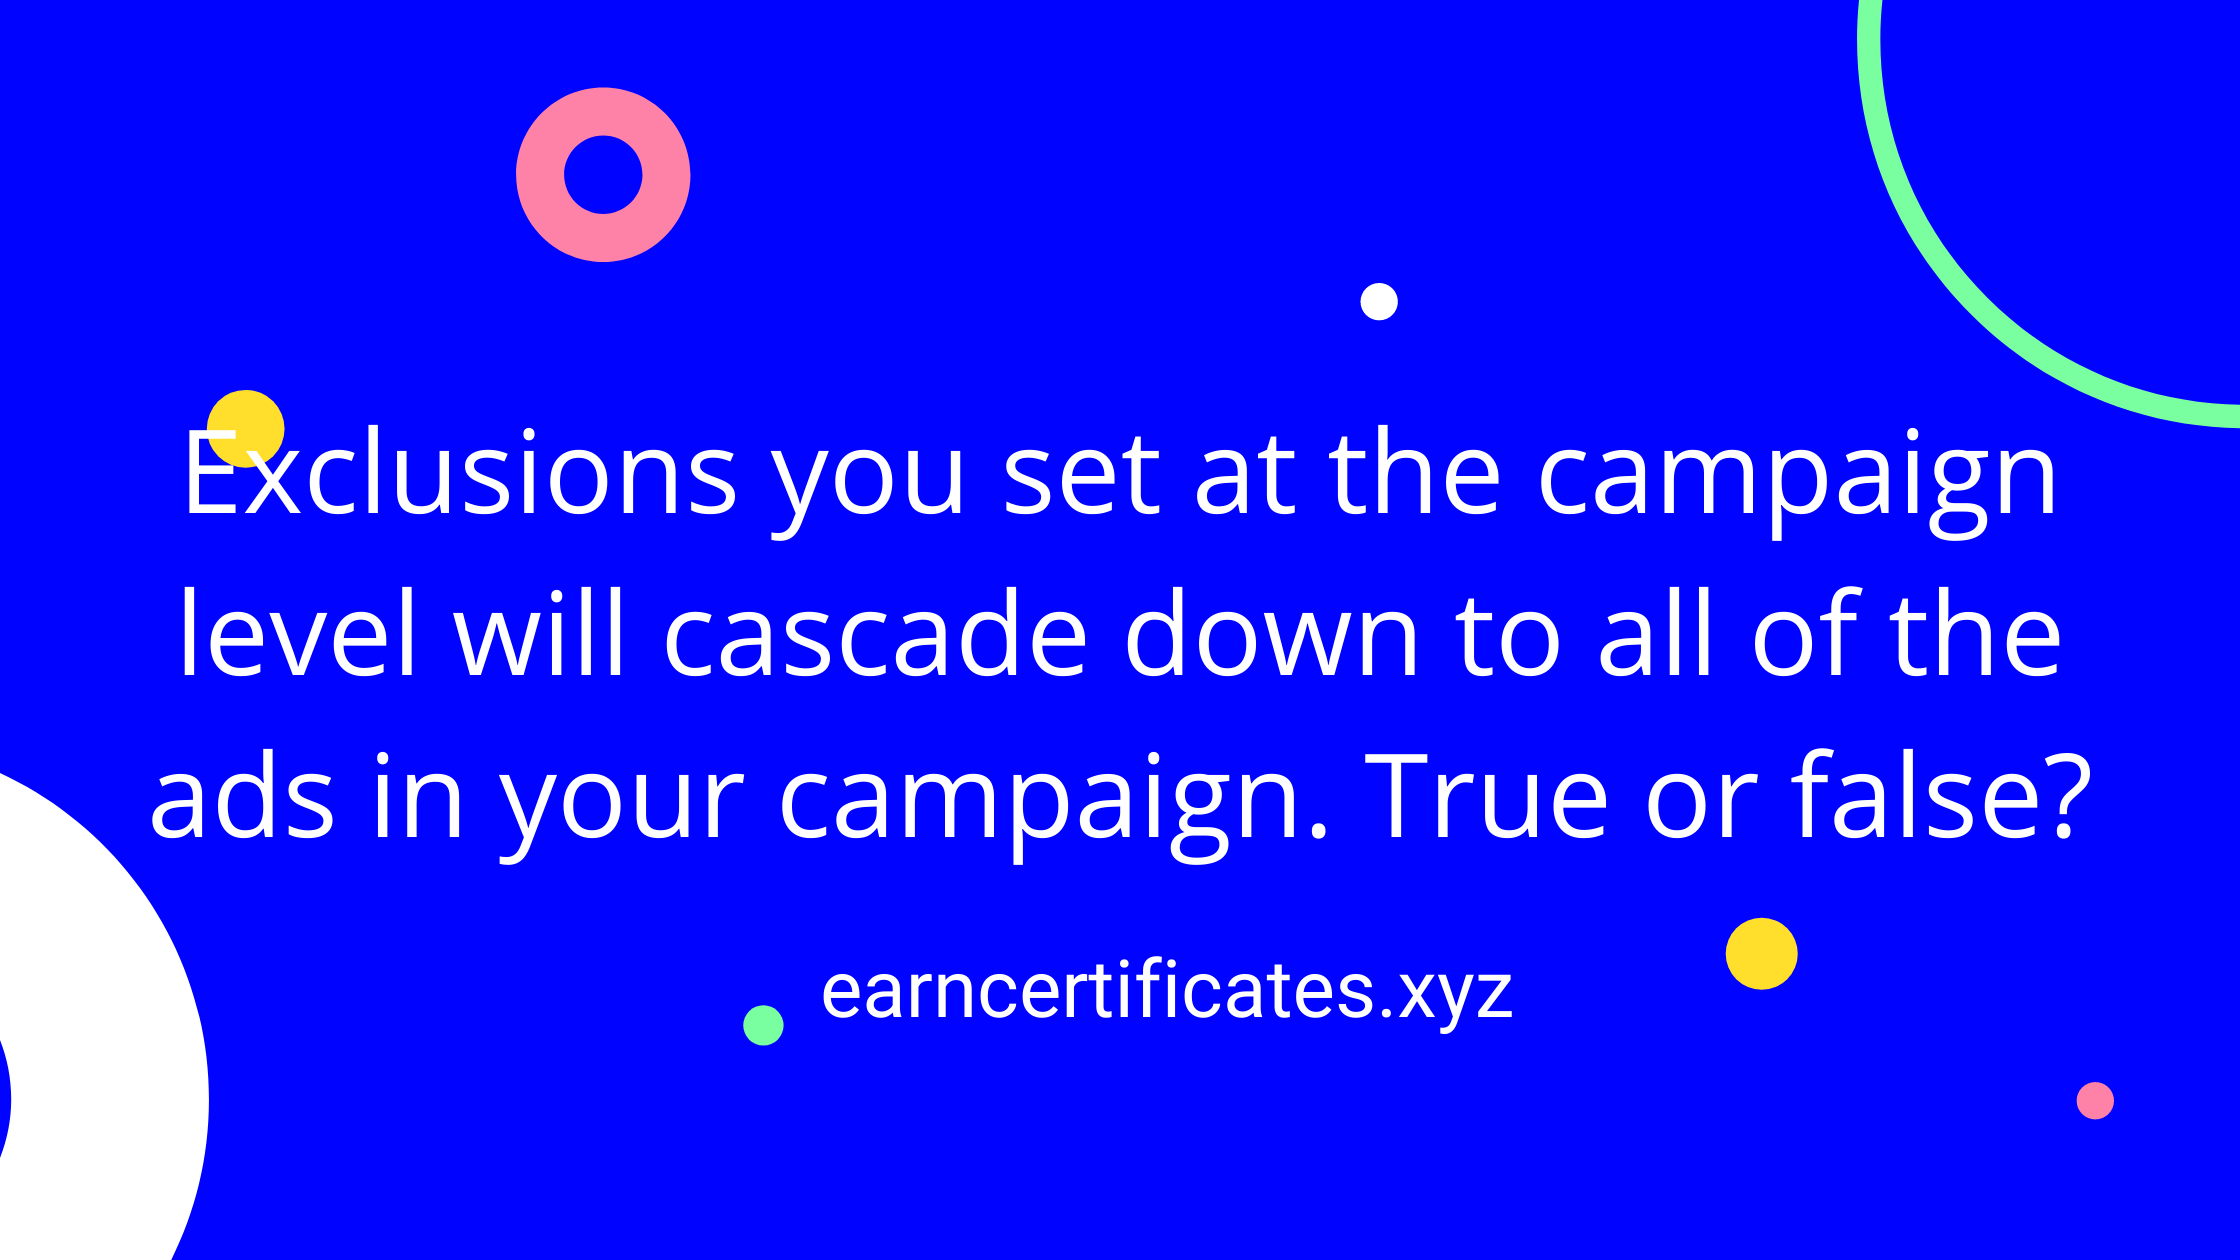 Exclusions you set at the campaign level will cascade down to all of the ads in your campaign. True or false?